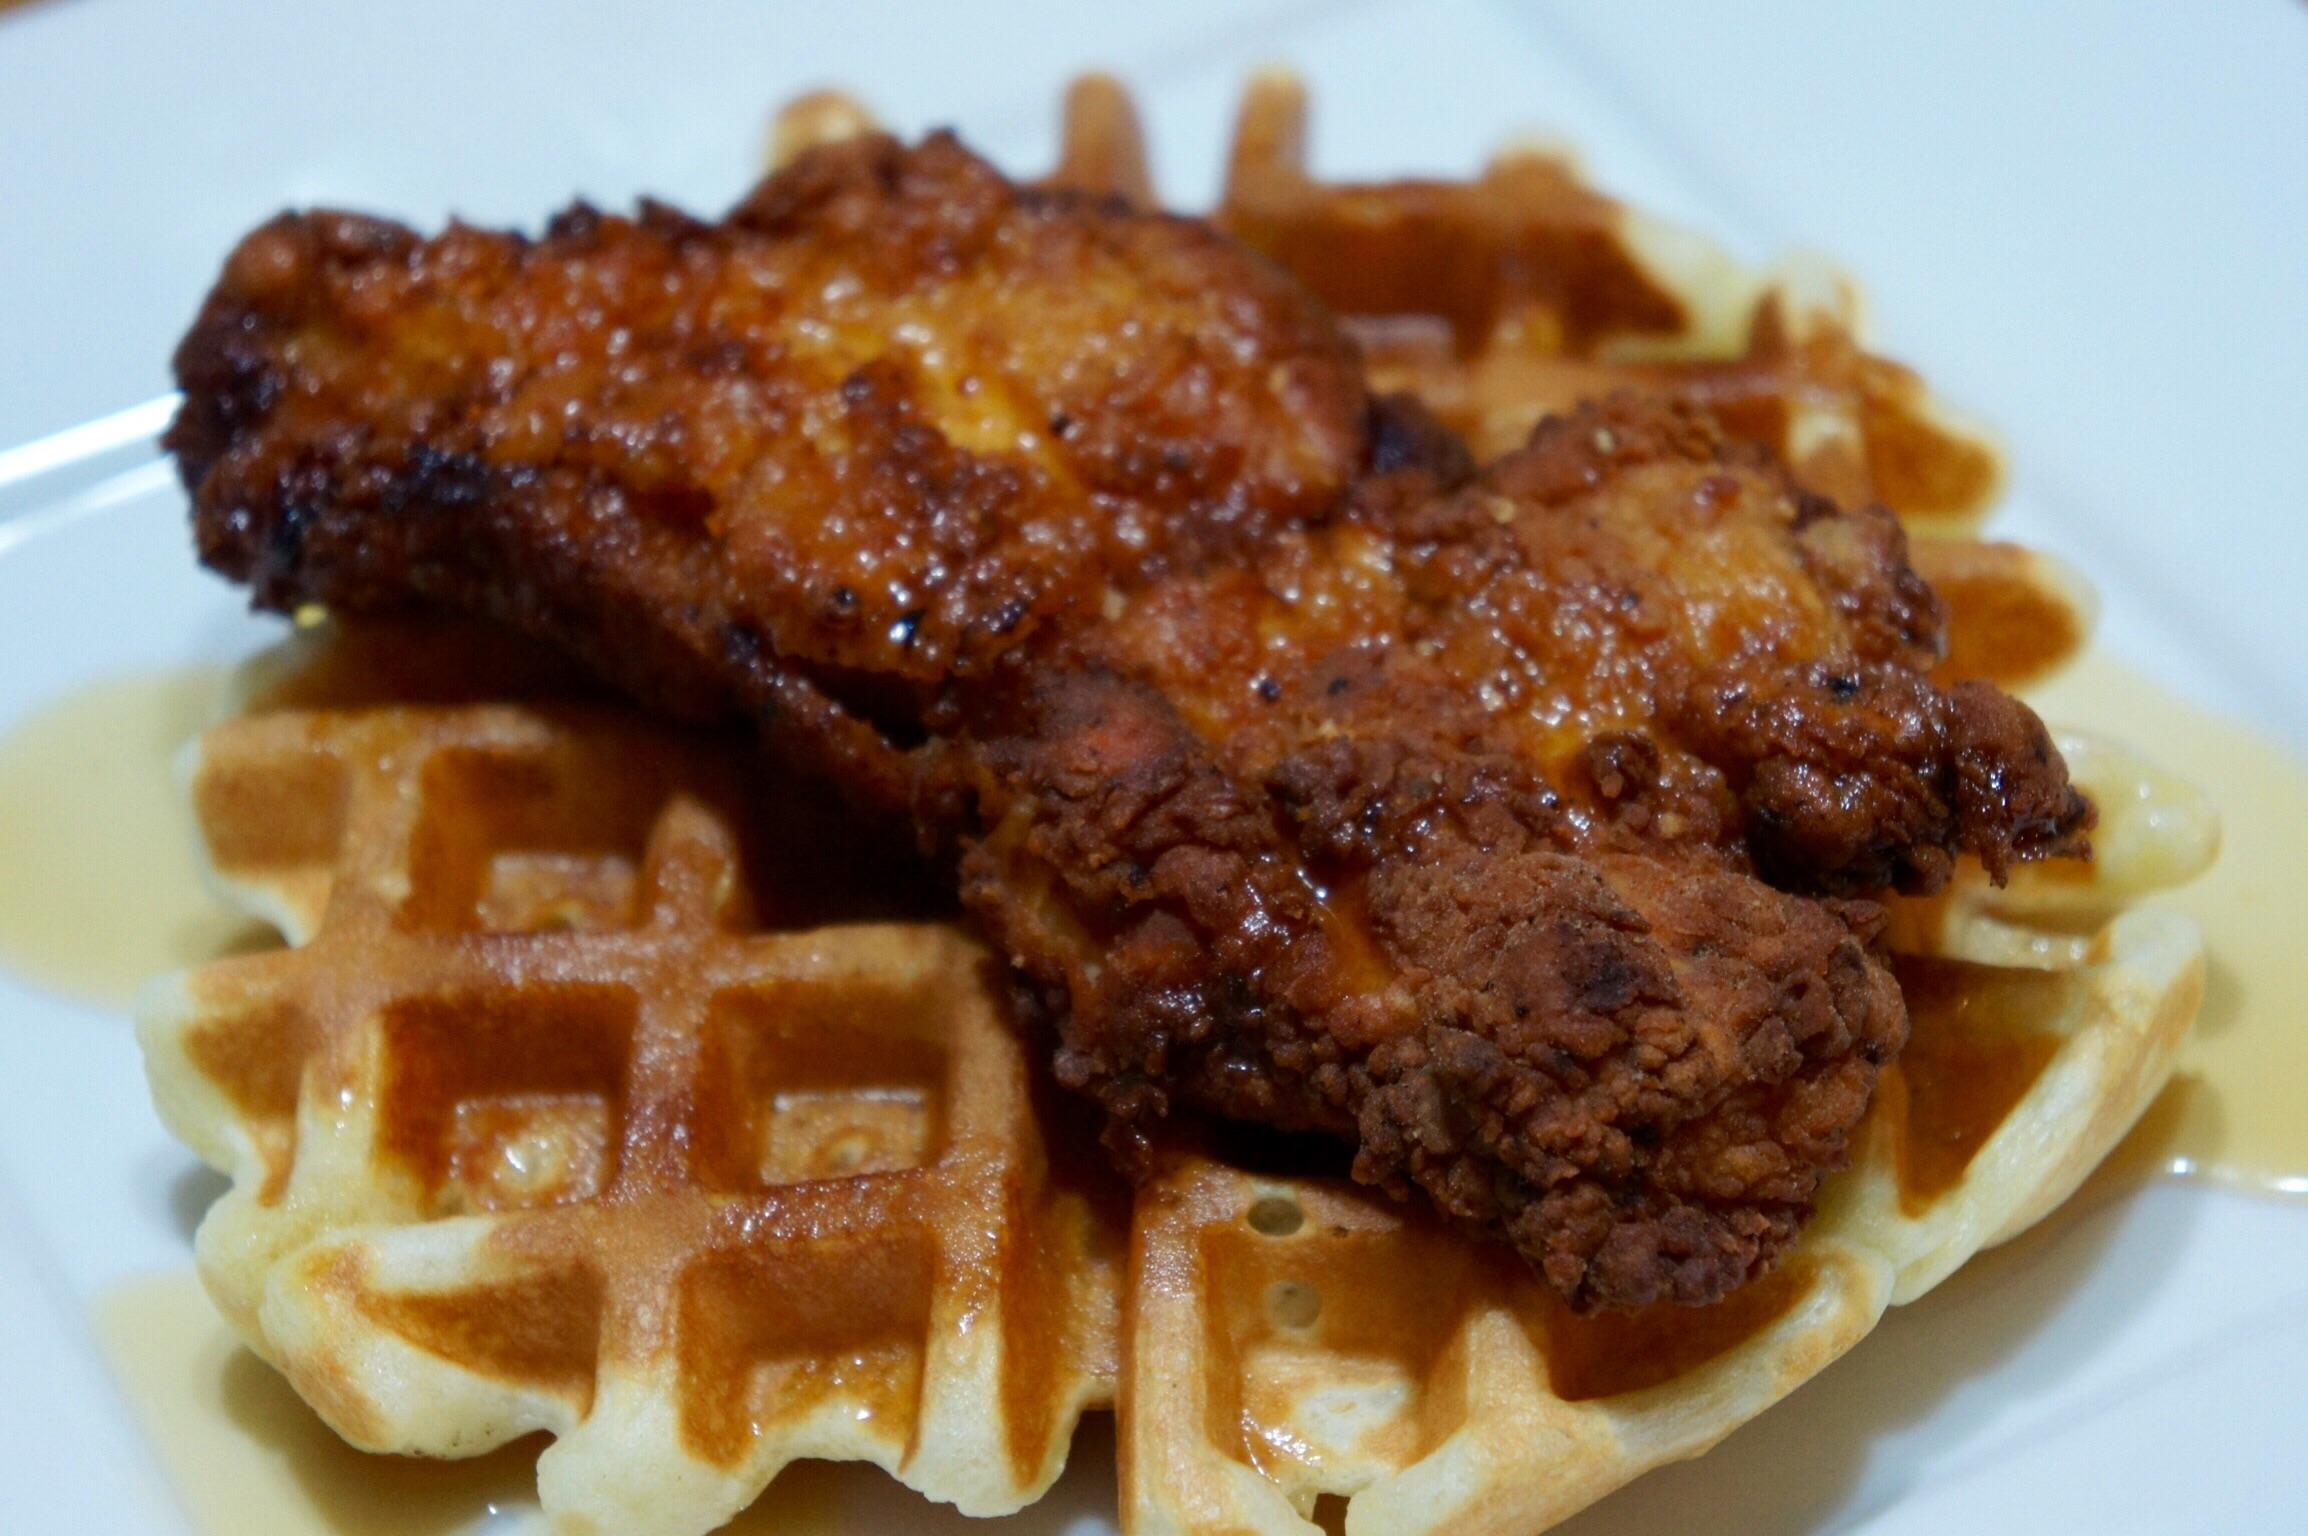 Spicy Chicken 'N Waffles